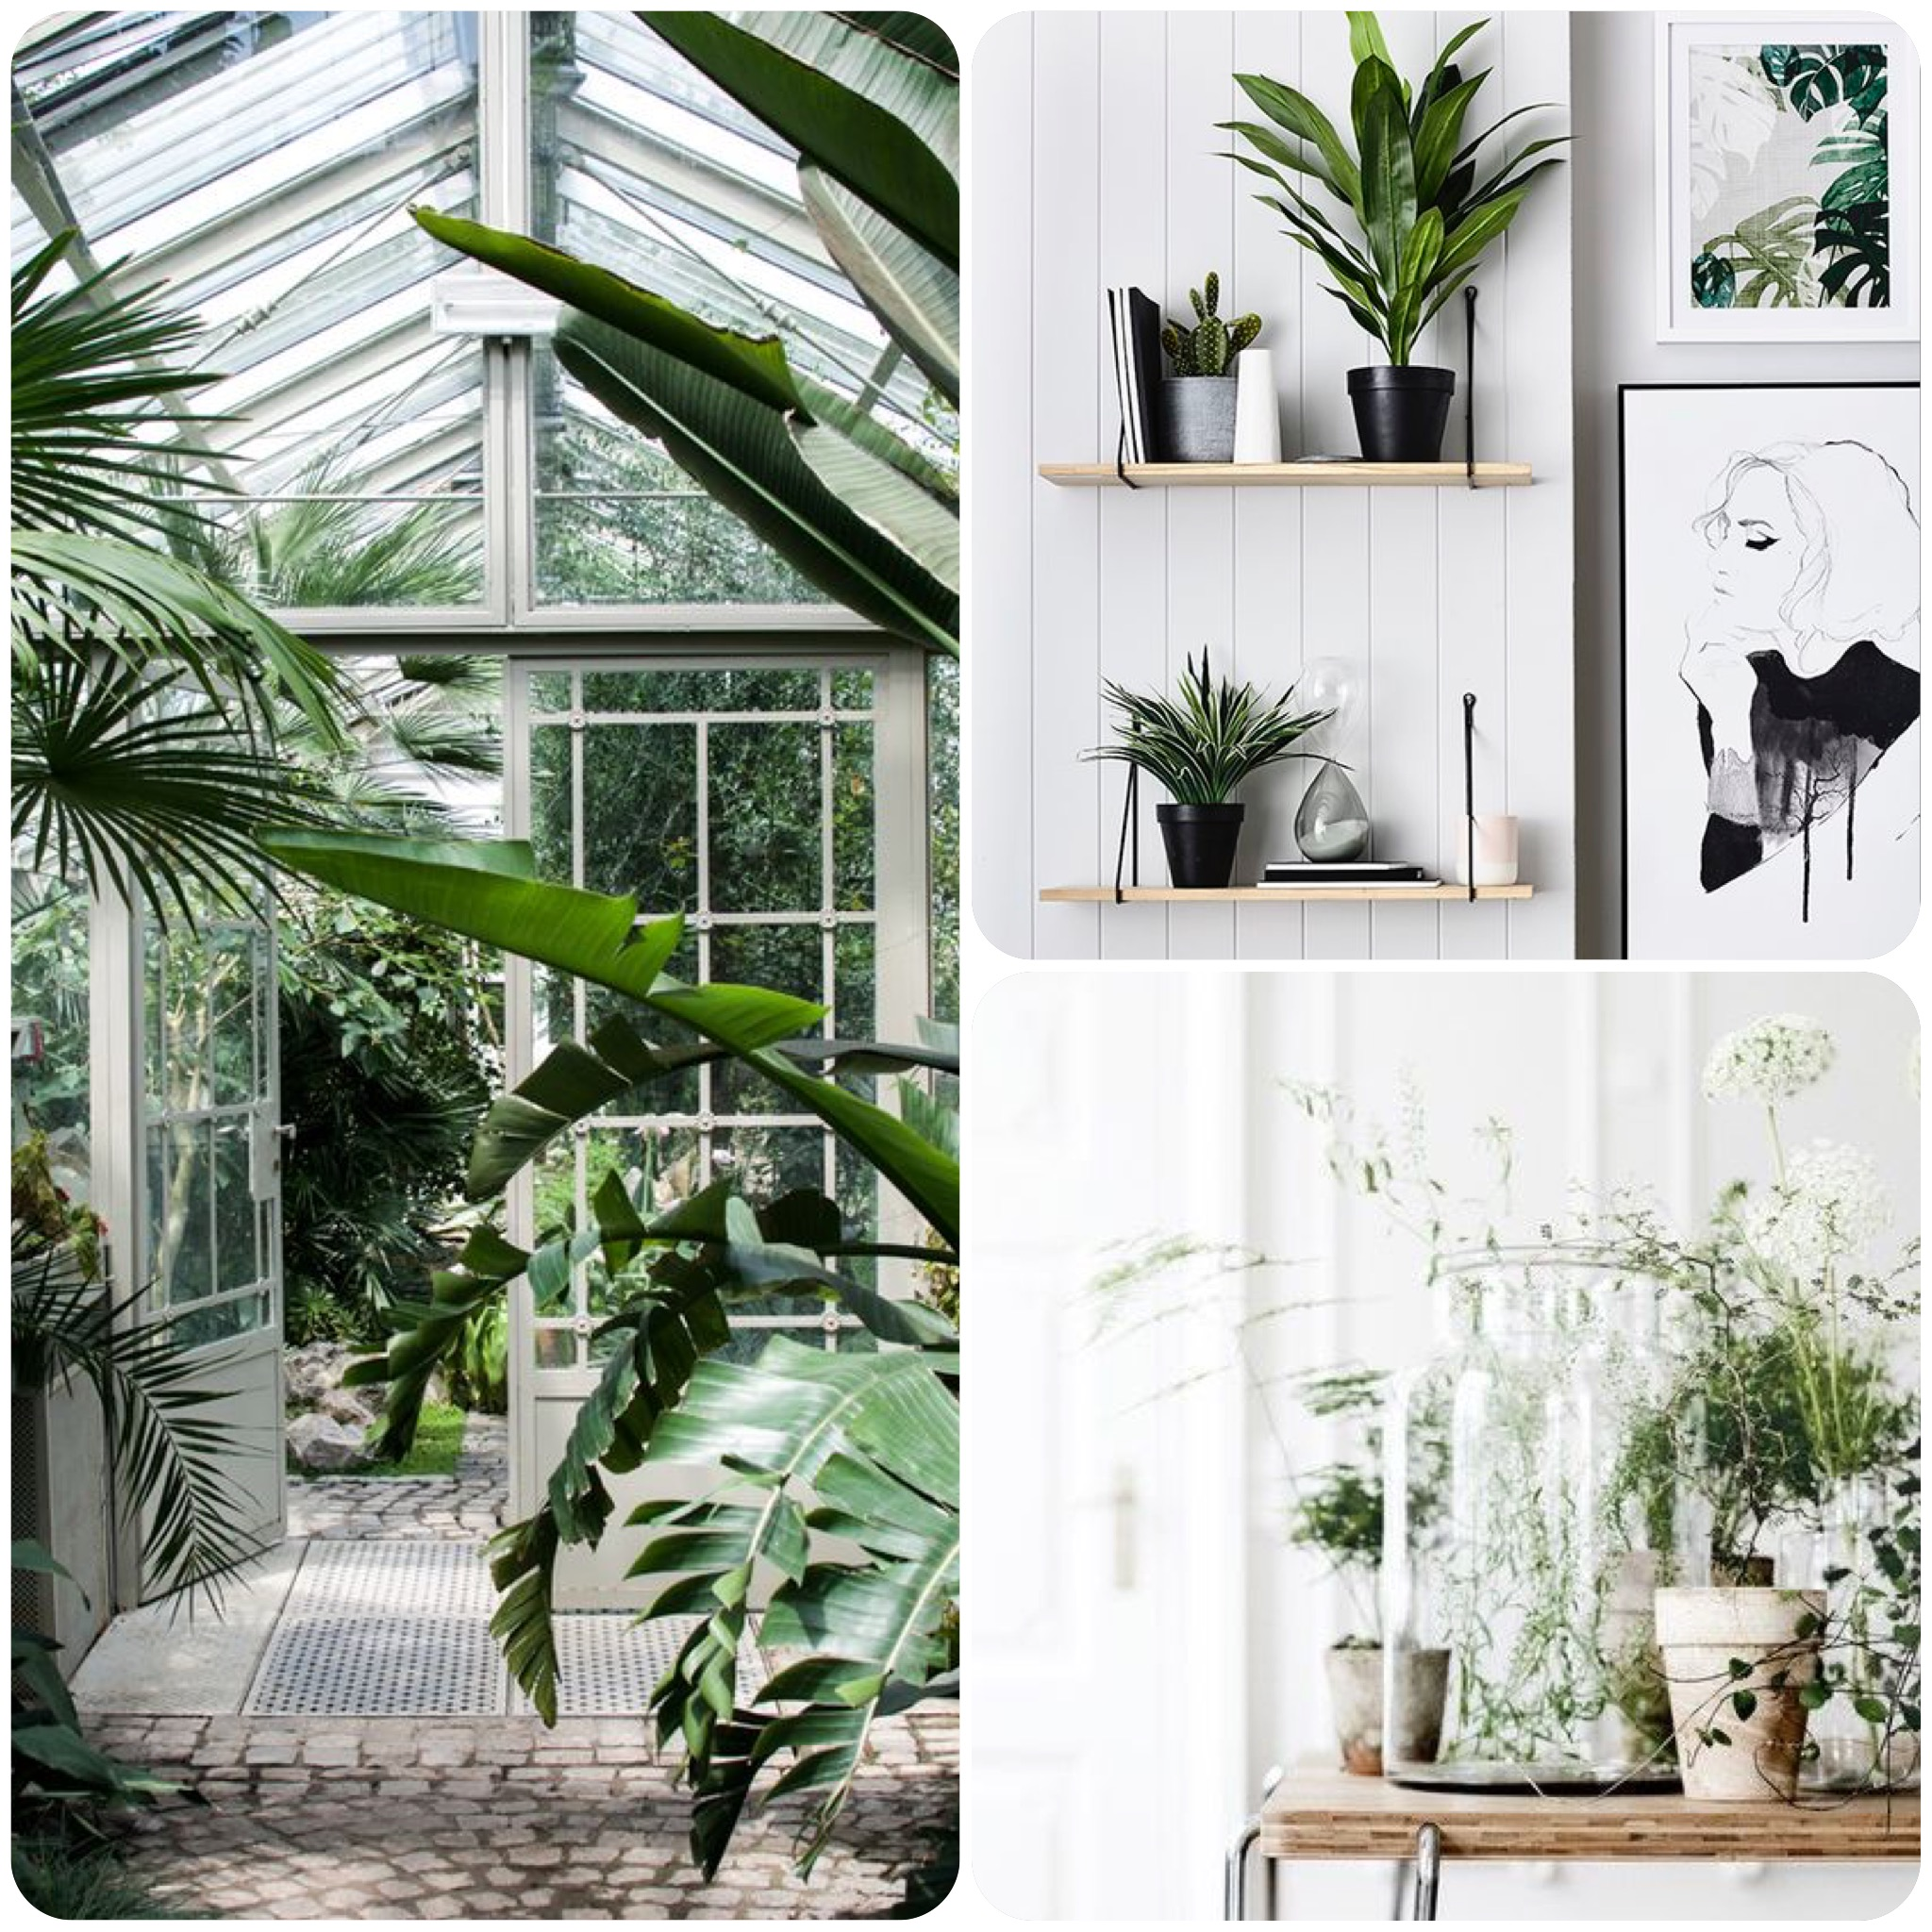 Home Decor Green: With All My Affection